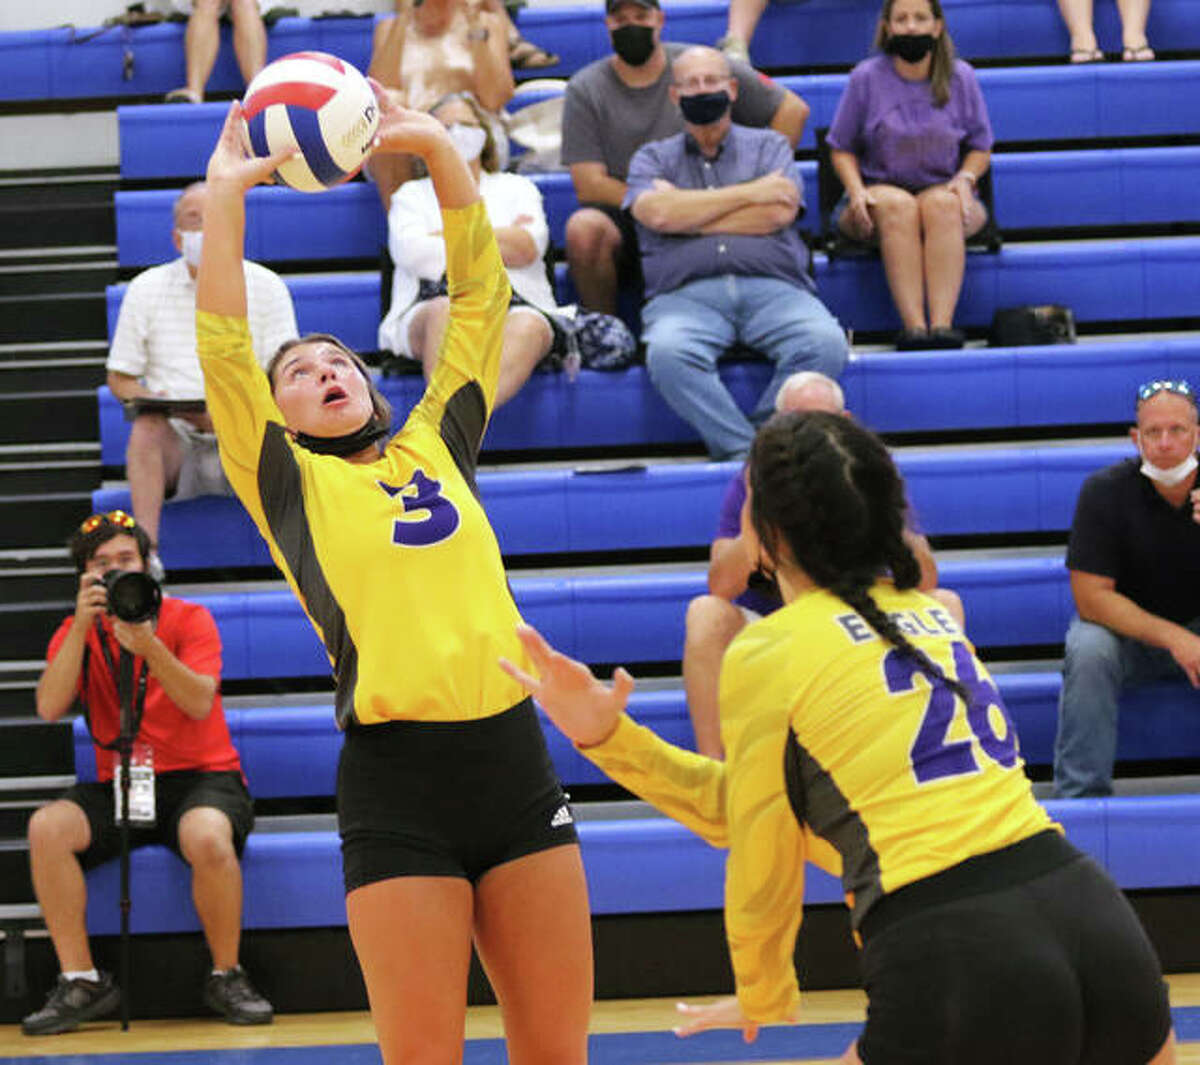 CM's Maddie Brueckner (3) sets as teammate Camryn Gehrs heads to the net in an August match at the Roxana Tourney. On Thursday, Brueckner had a double-double with 23 assists and 10 digs in the Eagles' three-set MVC loss at Highland.